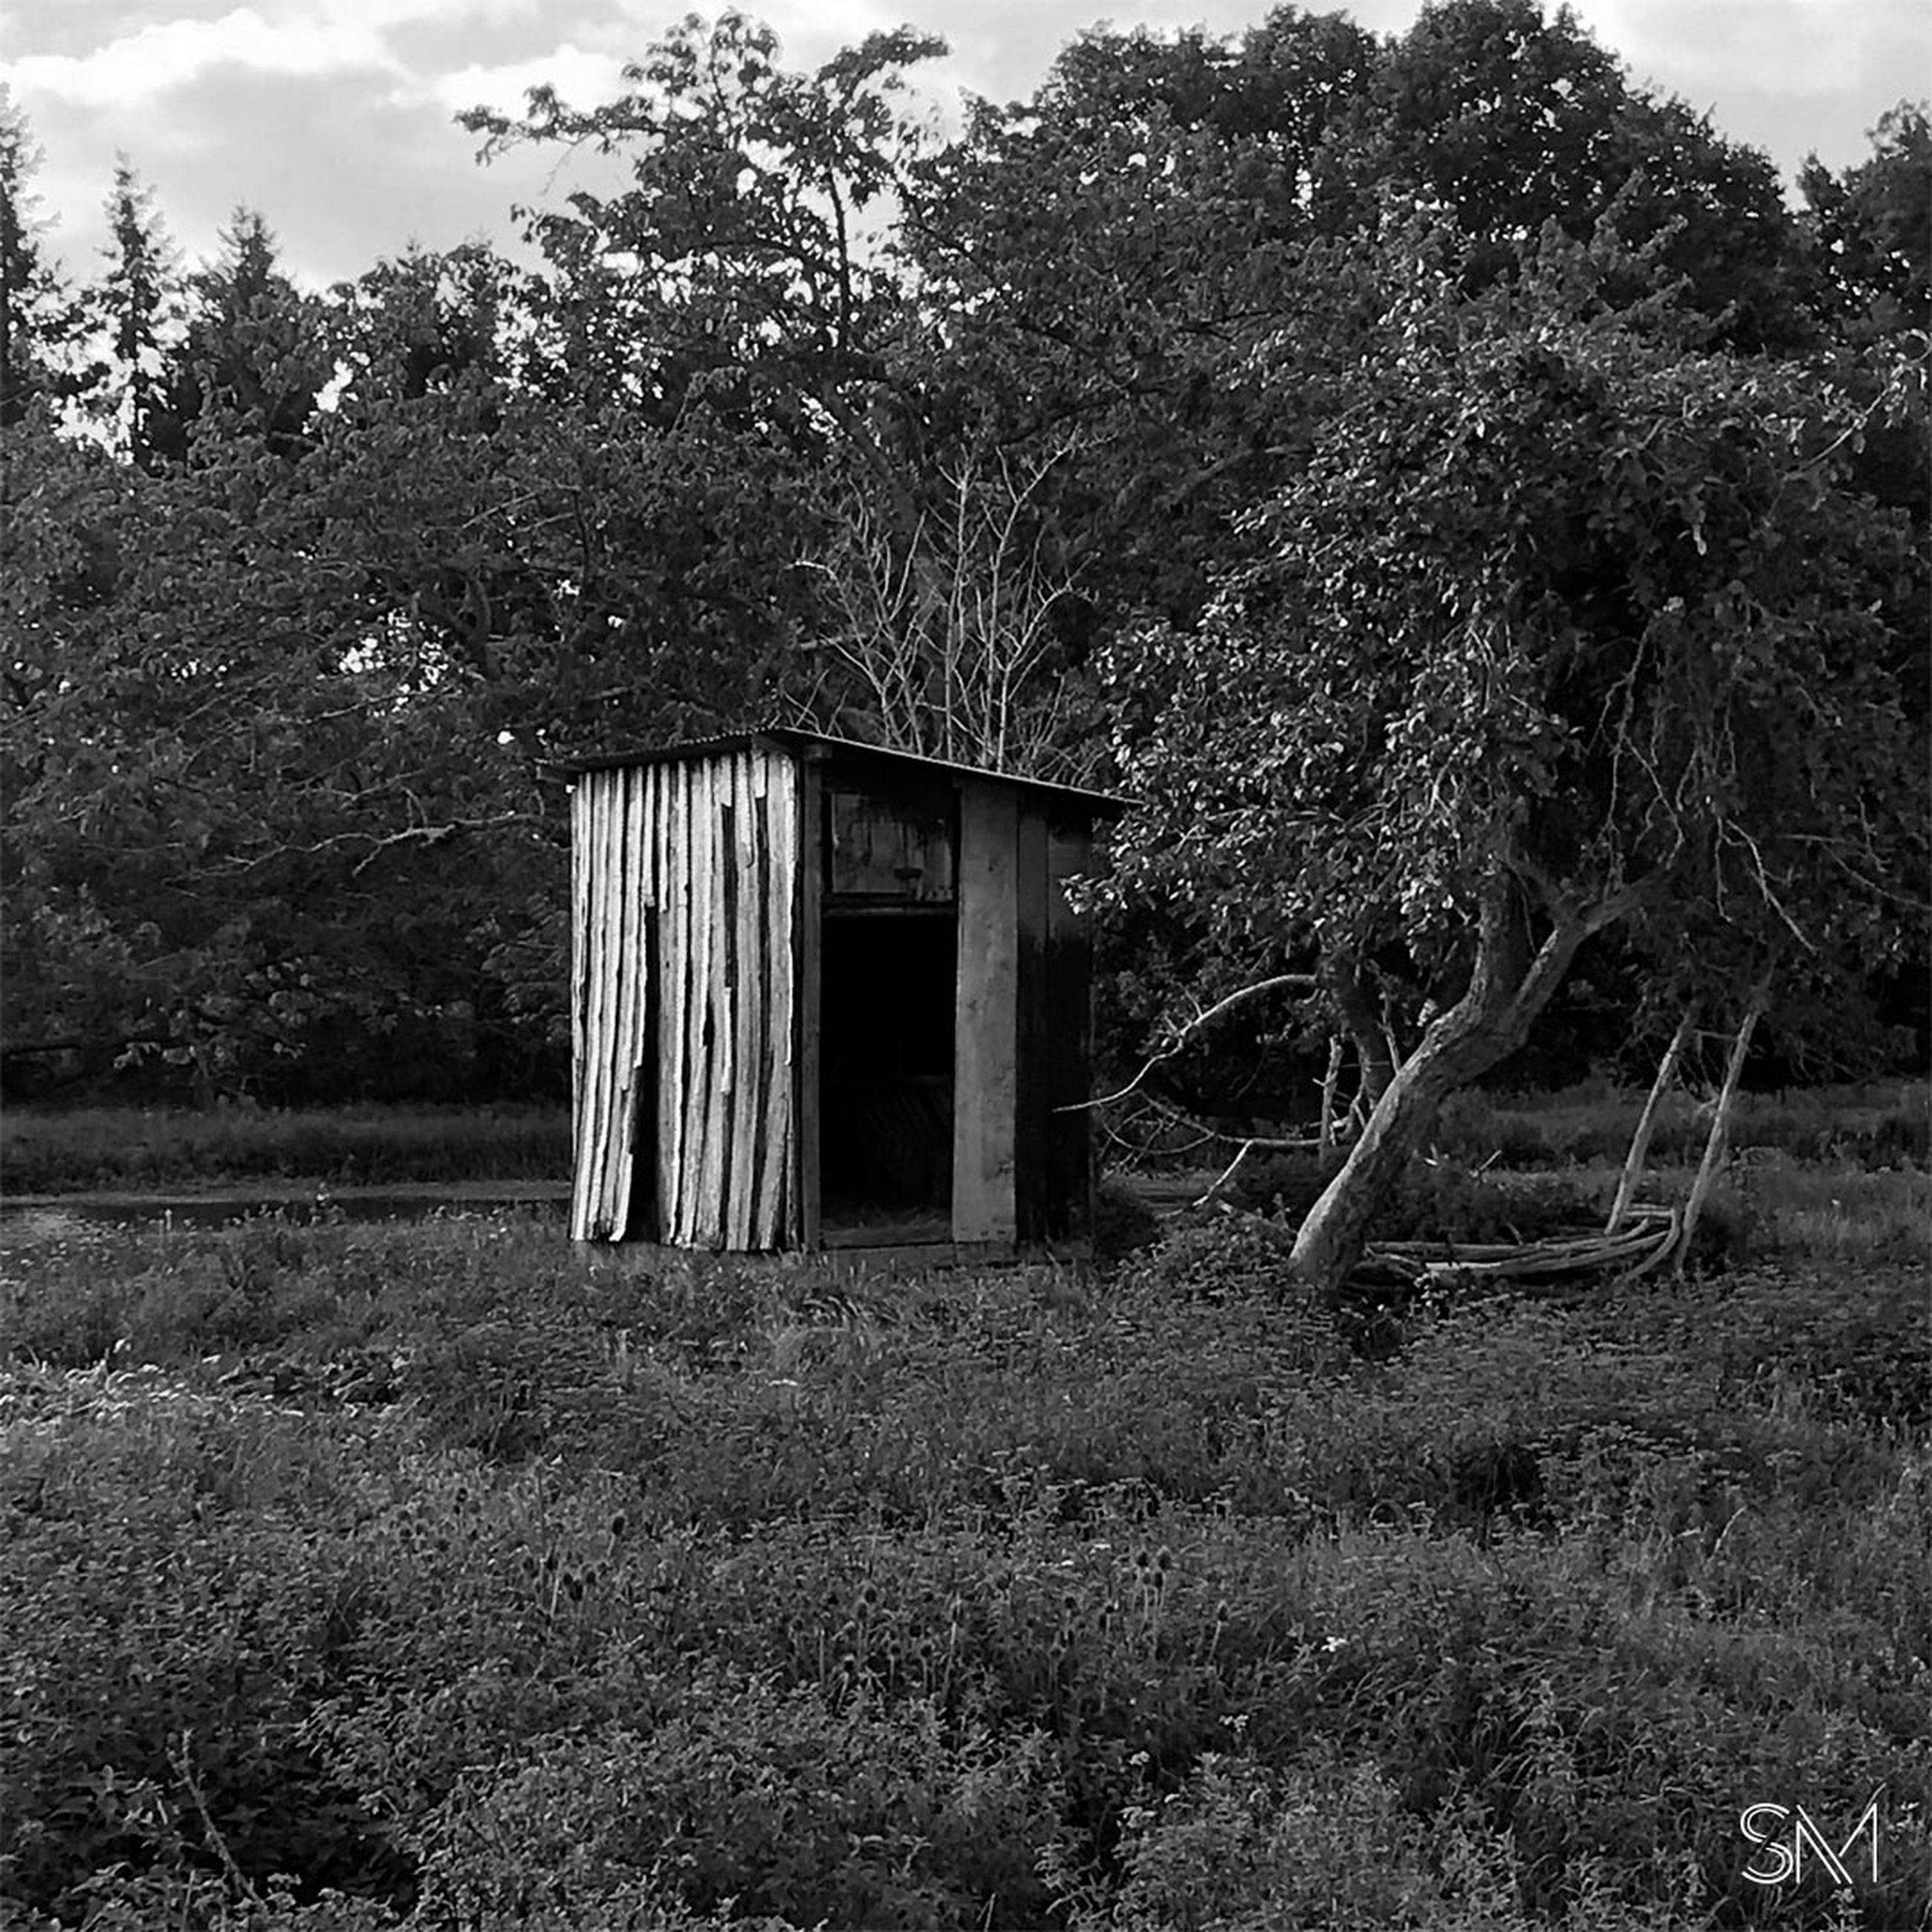 plant, rural area, tree, built structure, architecture, black and white, nature, house, monochrome, monochrome photography, no people, shack, land, building exterior, growth, sky, building, day, landscape, field, abandoned, forest, white, black, grass, outdoors, hut, darkness, cloud, wood, rural scene, old, environment, tranquility, woodland